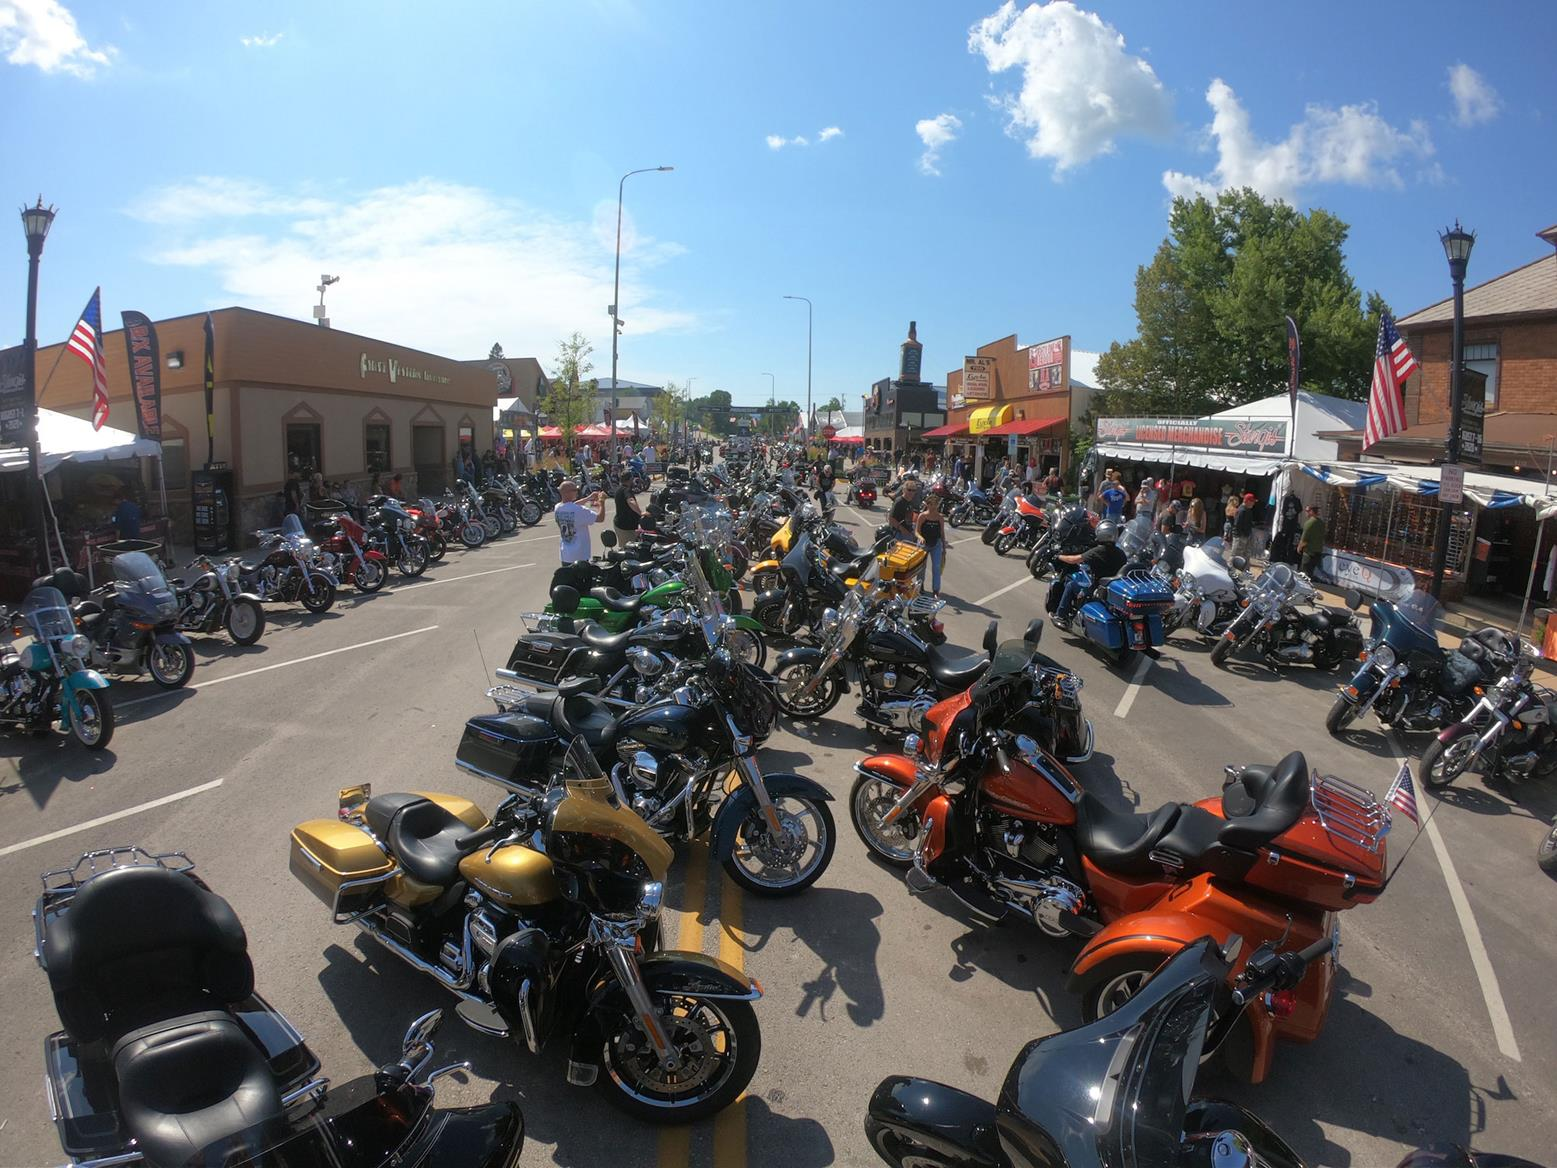 Sturgis Main Street was packed fully of Harleys